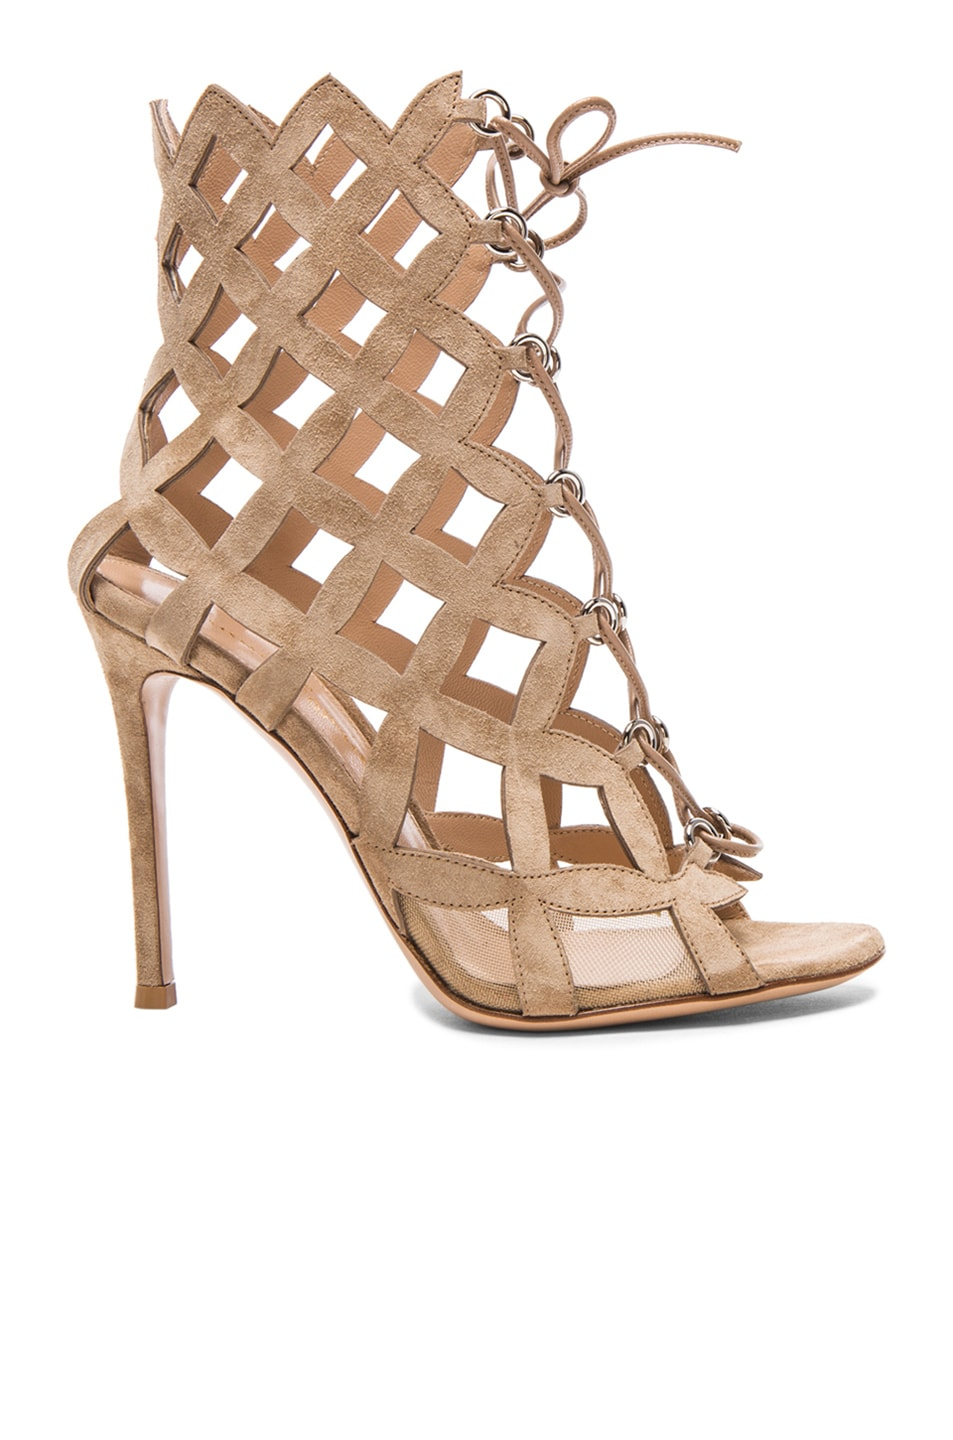 Image 1 of Gianvito Rossi Lace Up Cut Out Heels in Suede Bisque